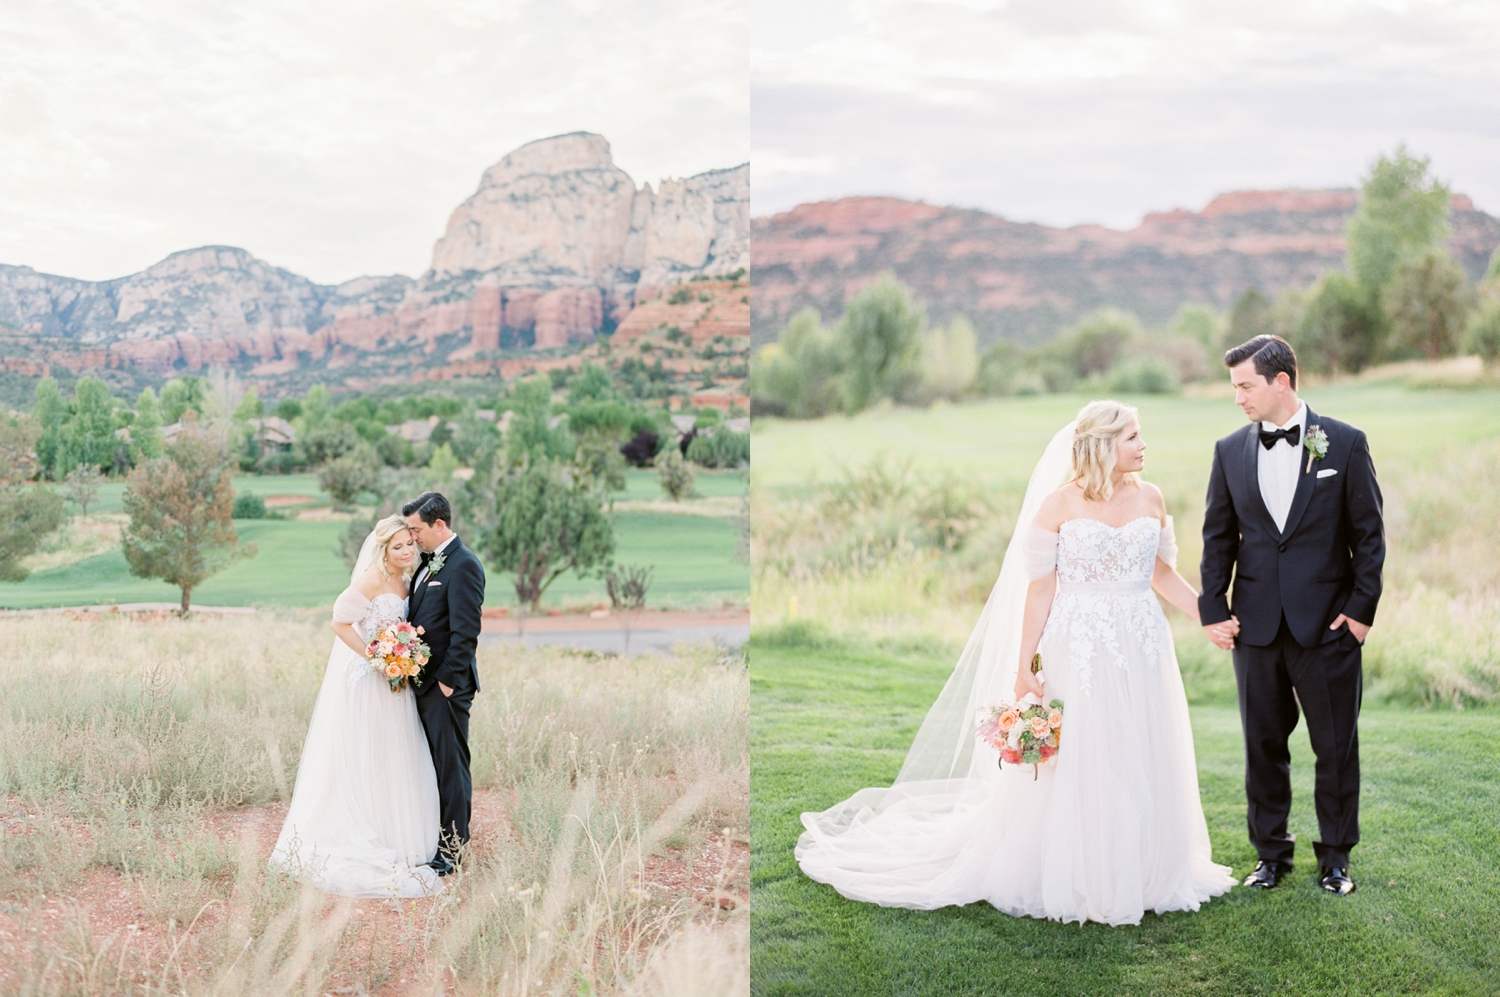 LVL Weddings and Events Seven Canyons Sedona Arizona